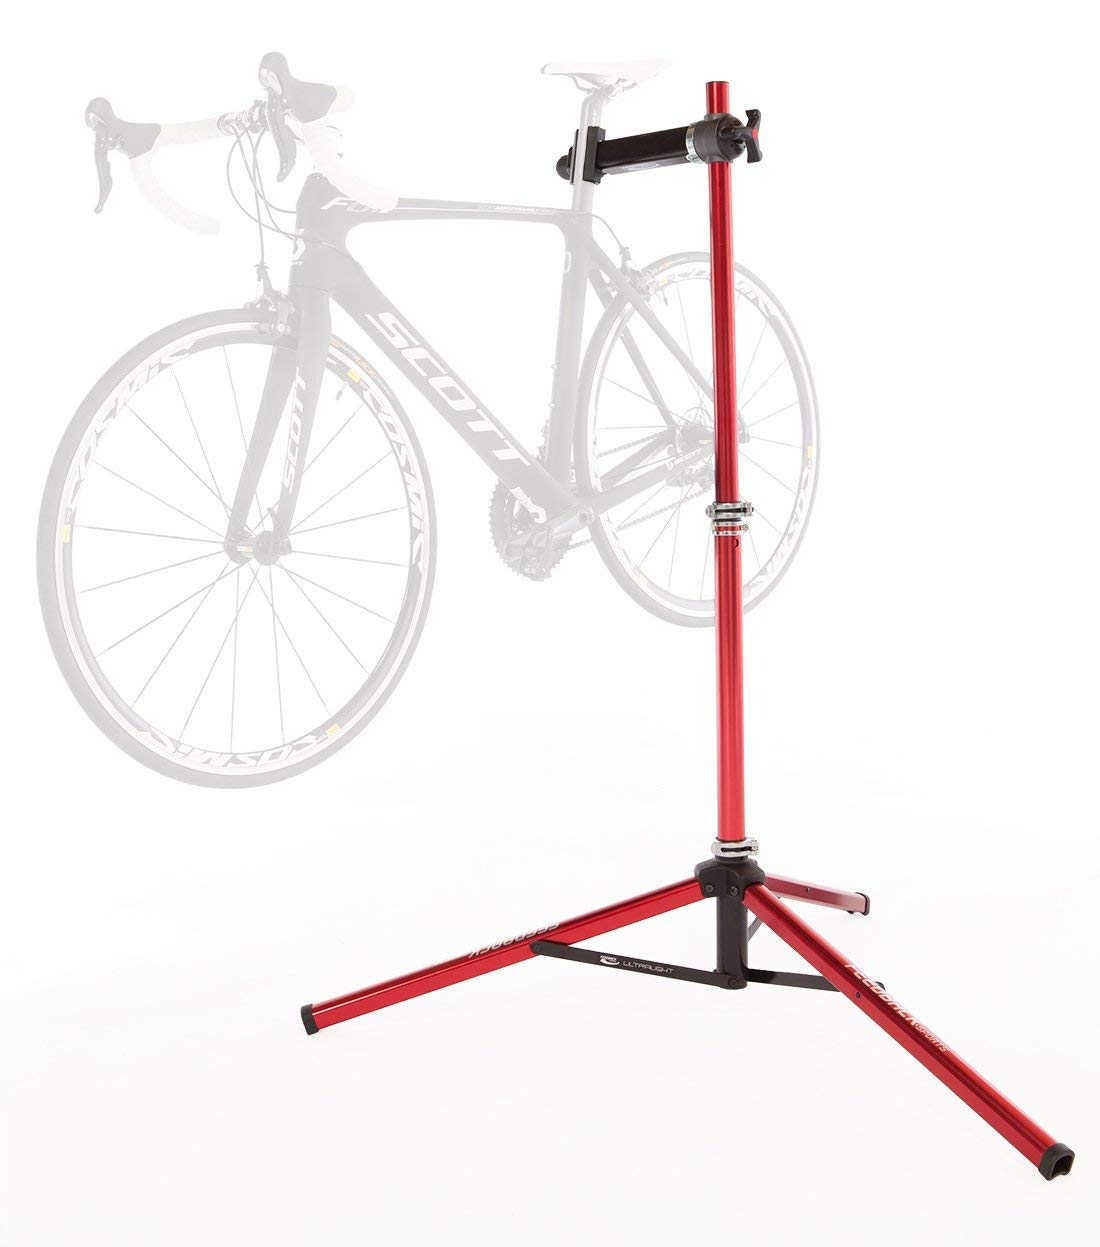 Feedback Sports Pro Ultra-light Bike Repair Stand